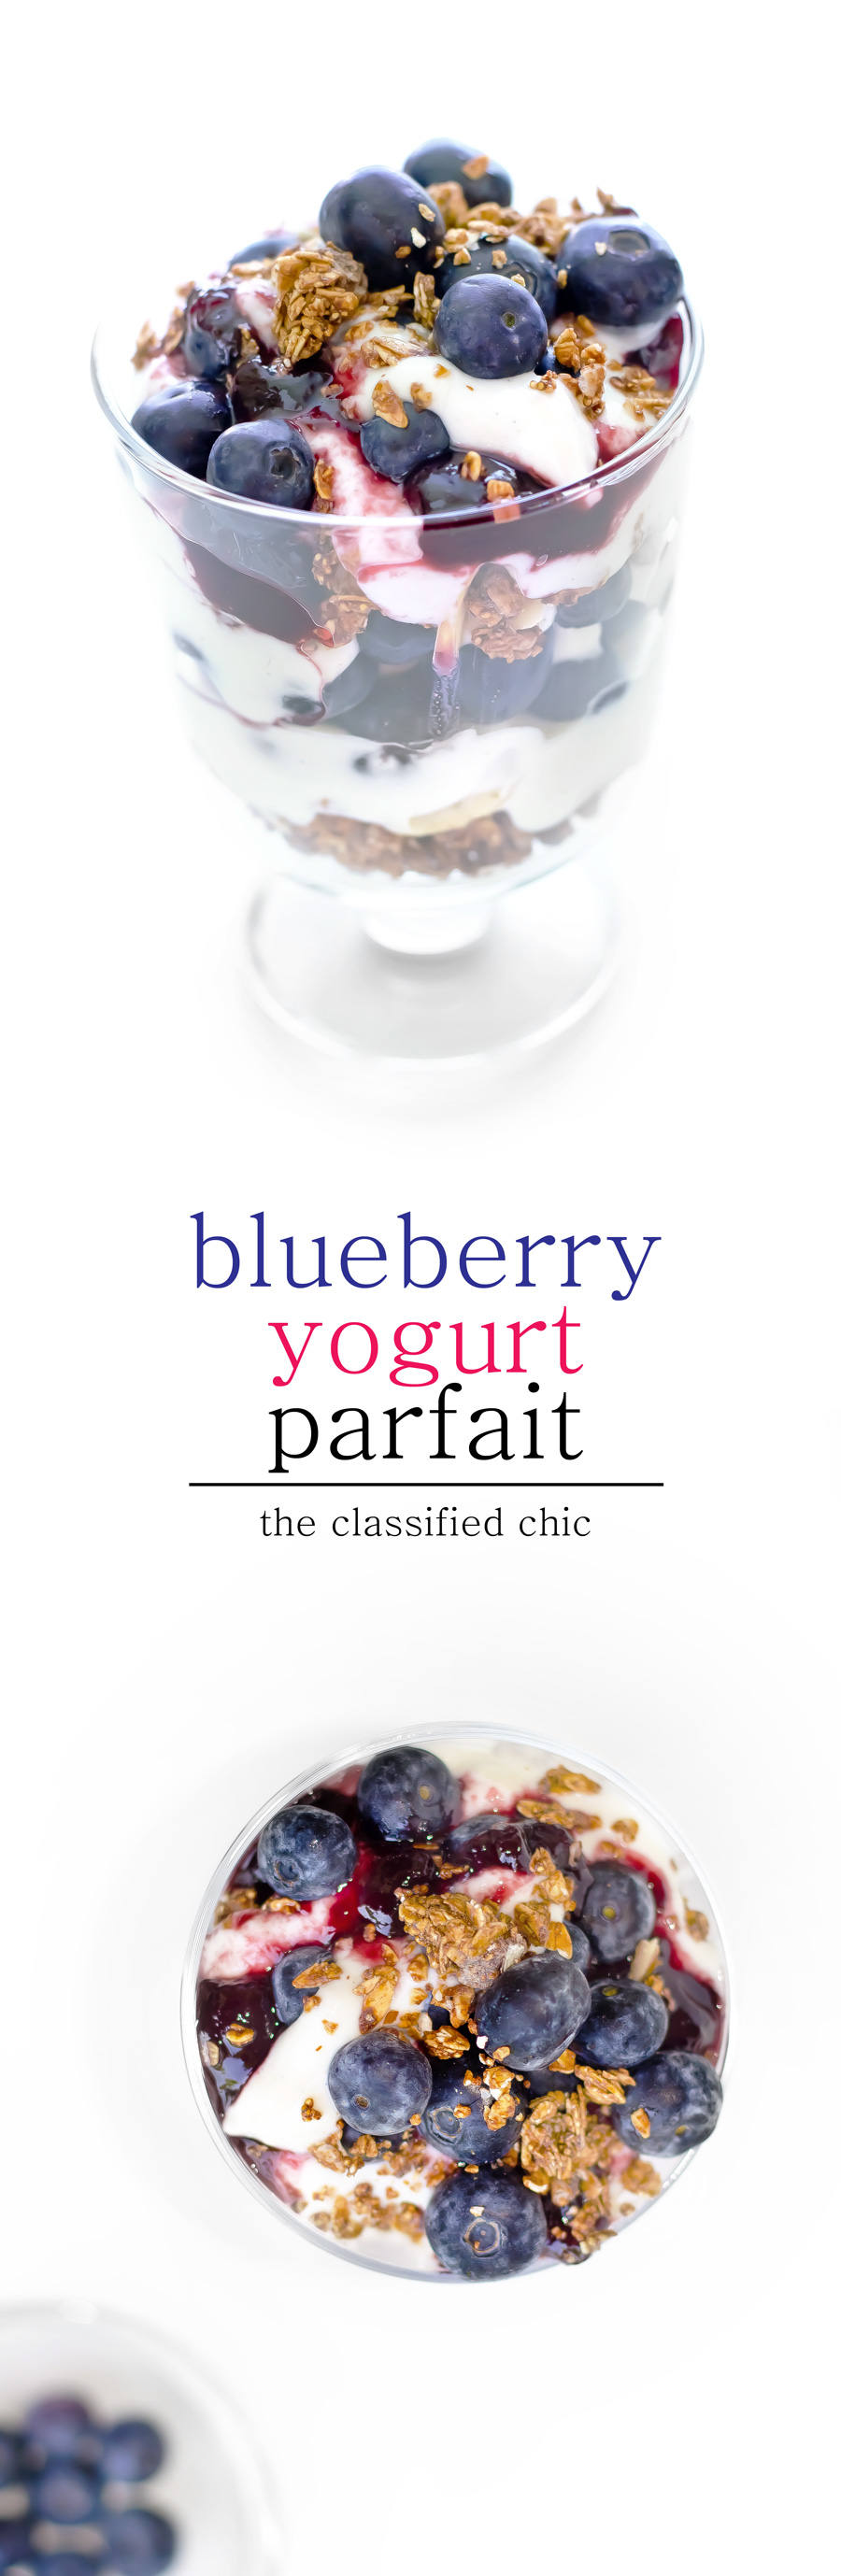 blueberry yogurt parfait recipe